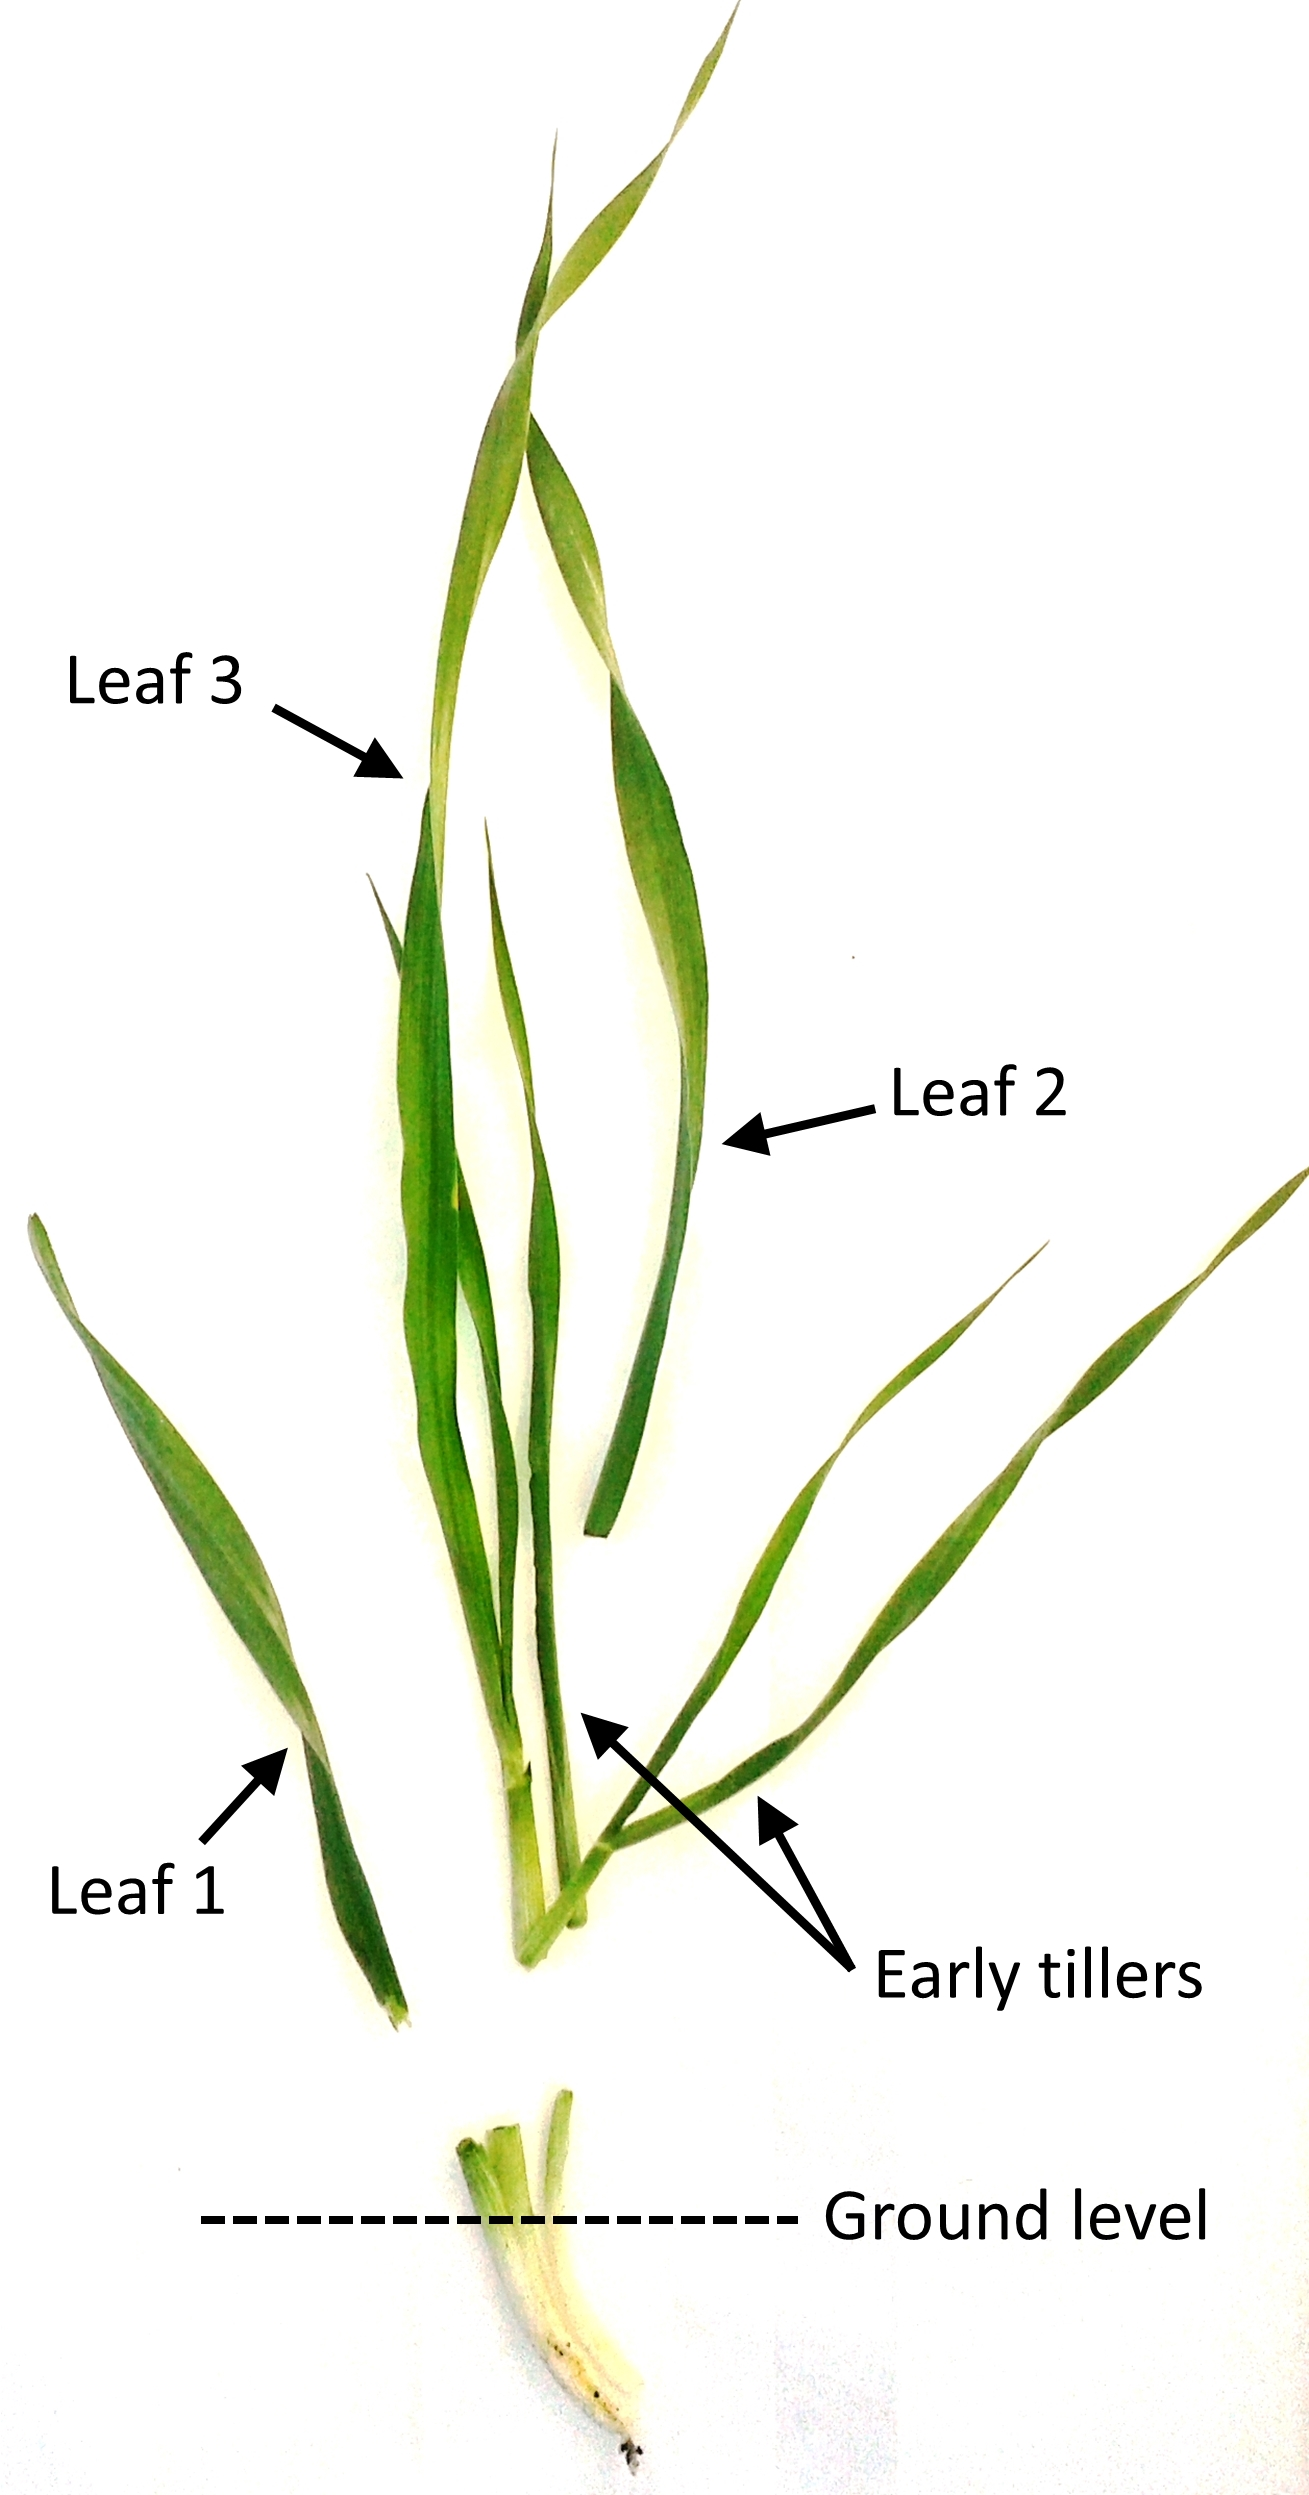 Figure 1. Component traits of early vigour in barley. Featured plant was sampled 25 days after sowing at the field trial conducted at Hermitage Research Facility, Warwick, Queensland. Early tillers emerged in the axils of leaf 1 and leaf 2.